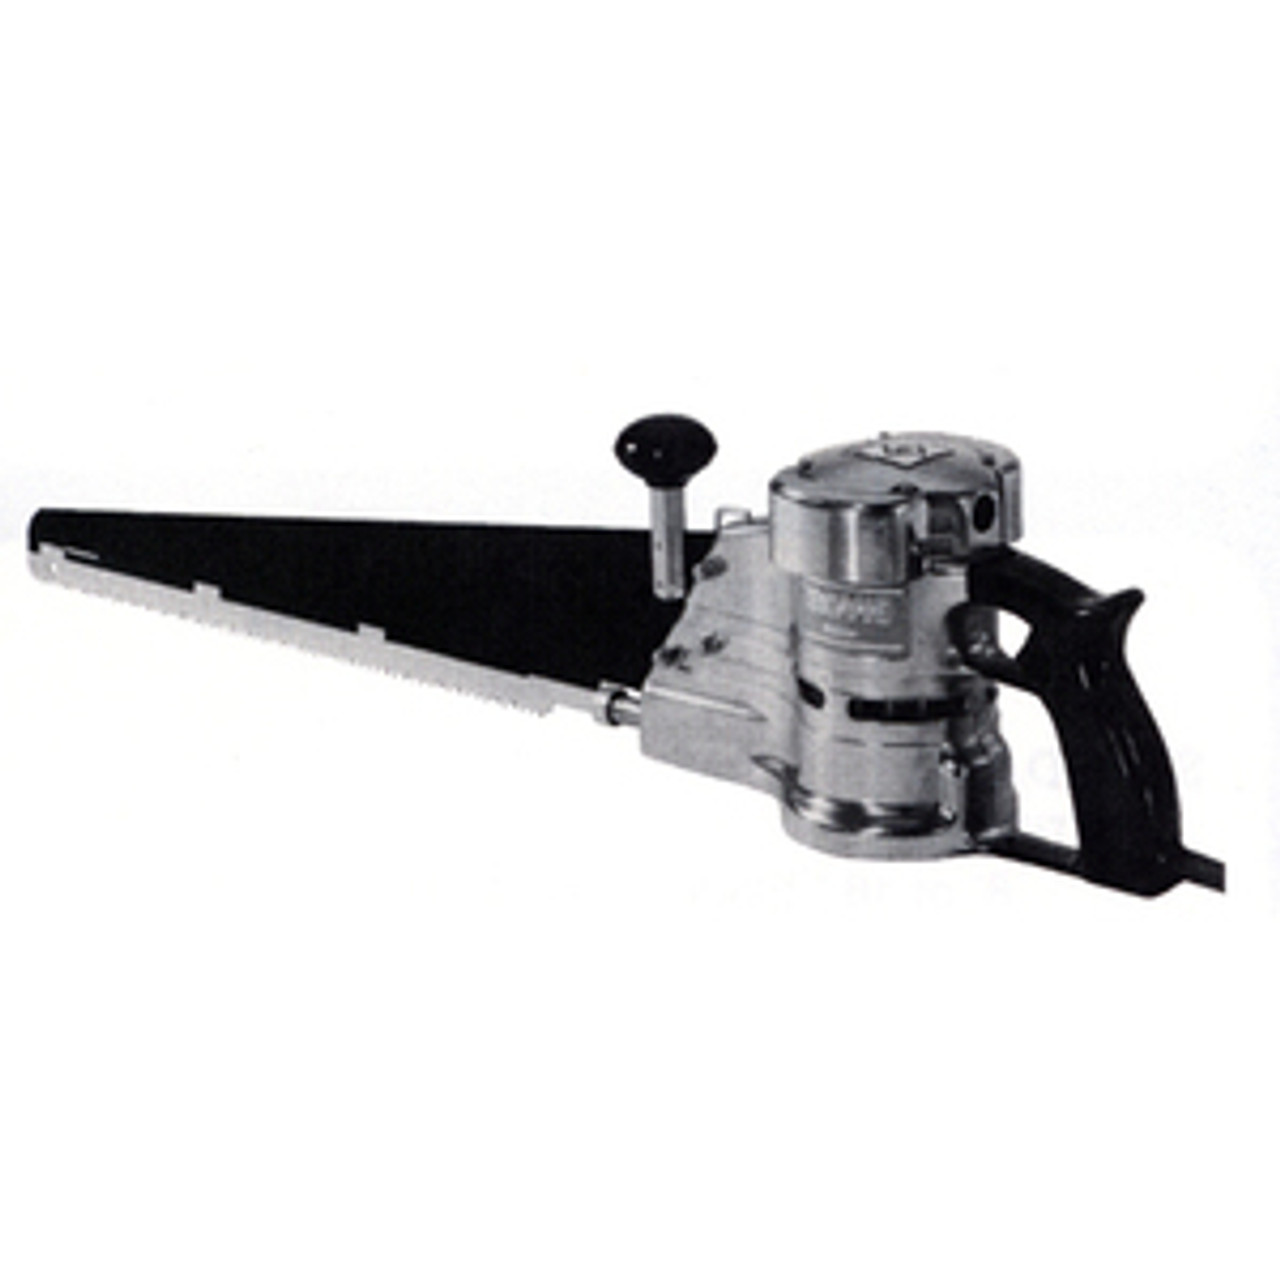 """Jarvis 404 Wellsaw w/ Heavy Duty Blade Support and Blade - 16"""" x 400mm, 115v, 1ph, 50/60 Hz"""